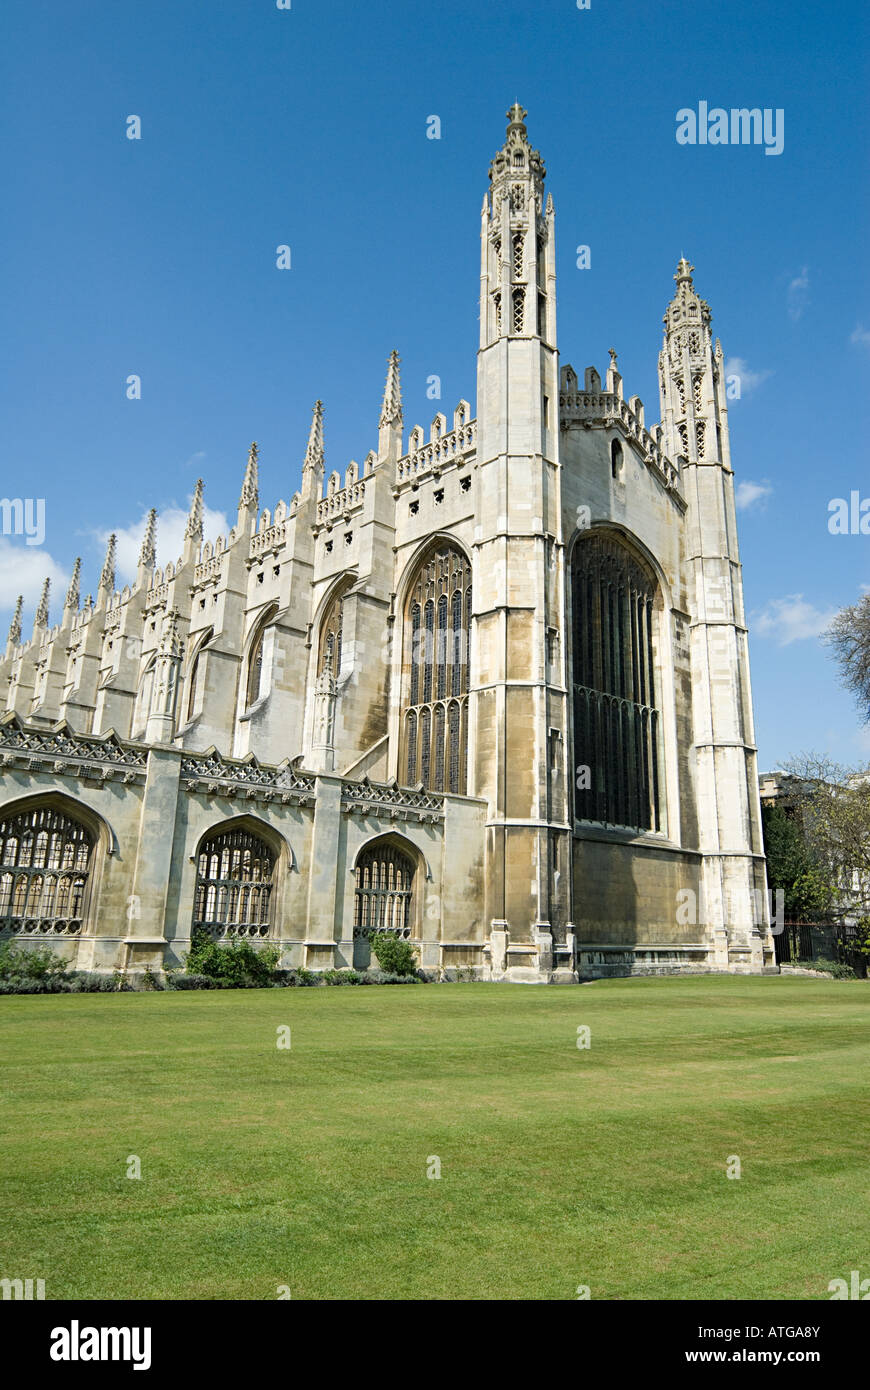 Kings college chapel cambridge - Stock Image